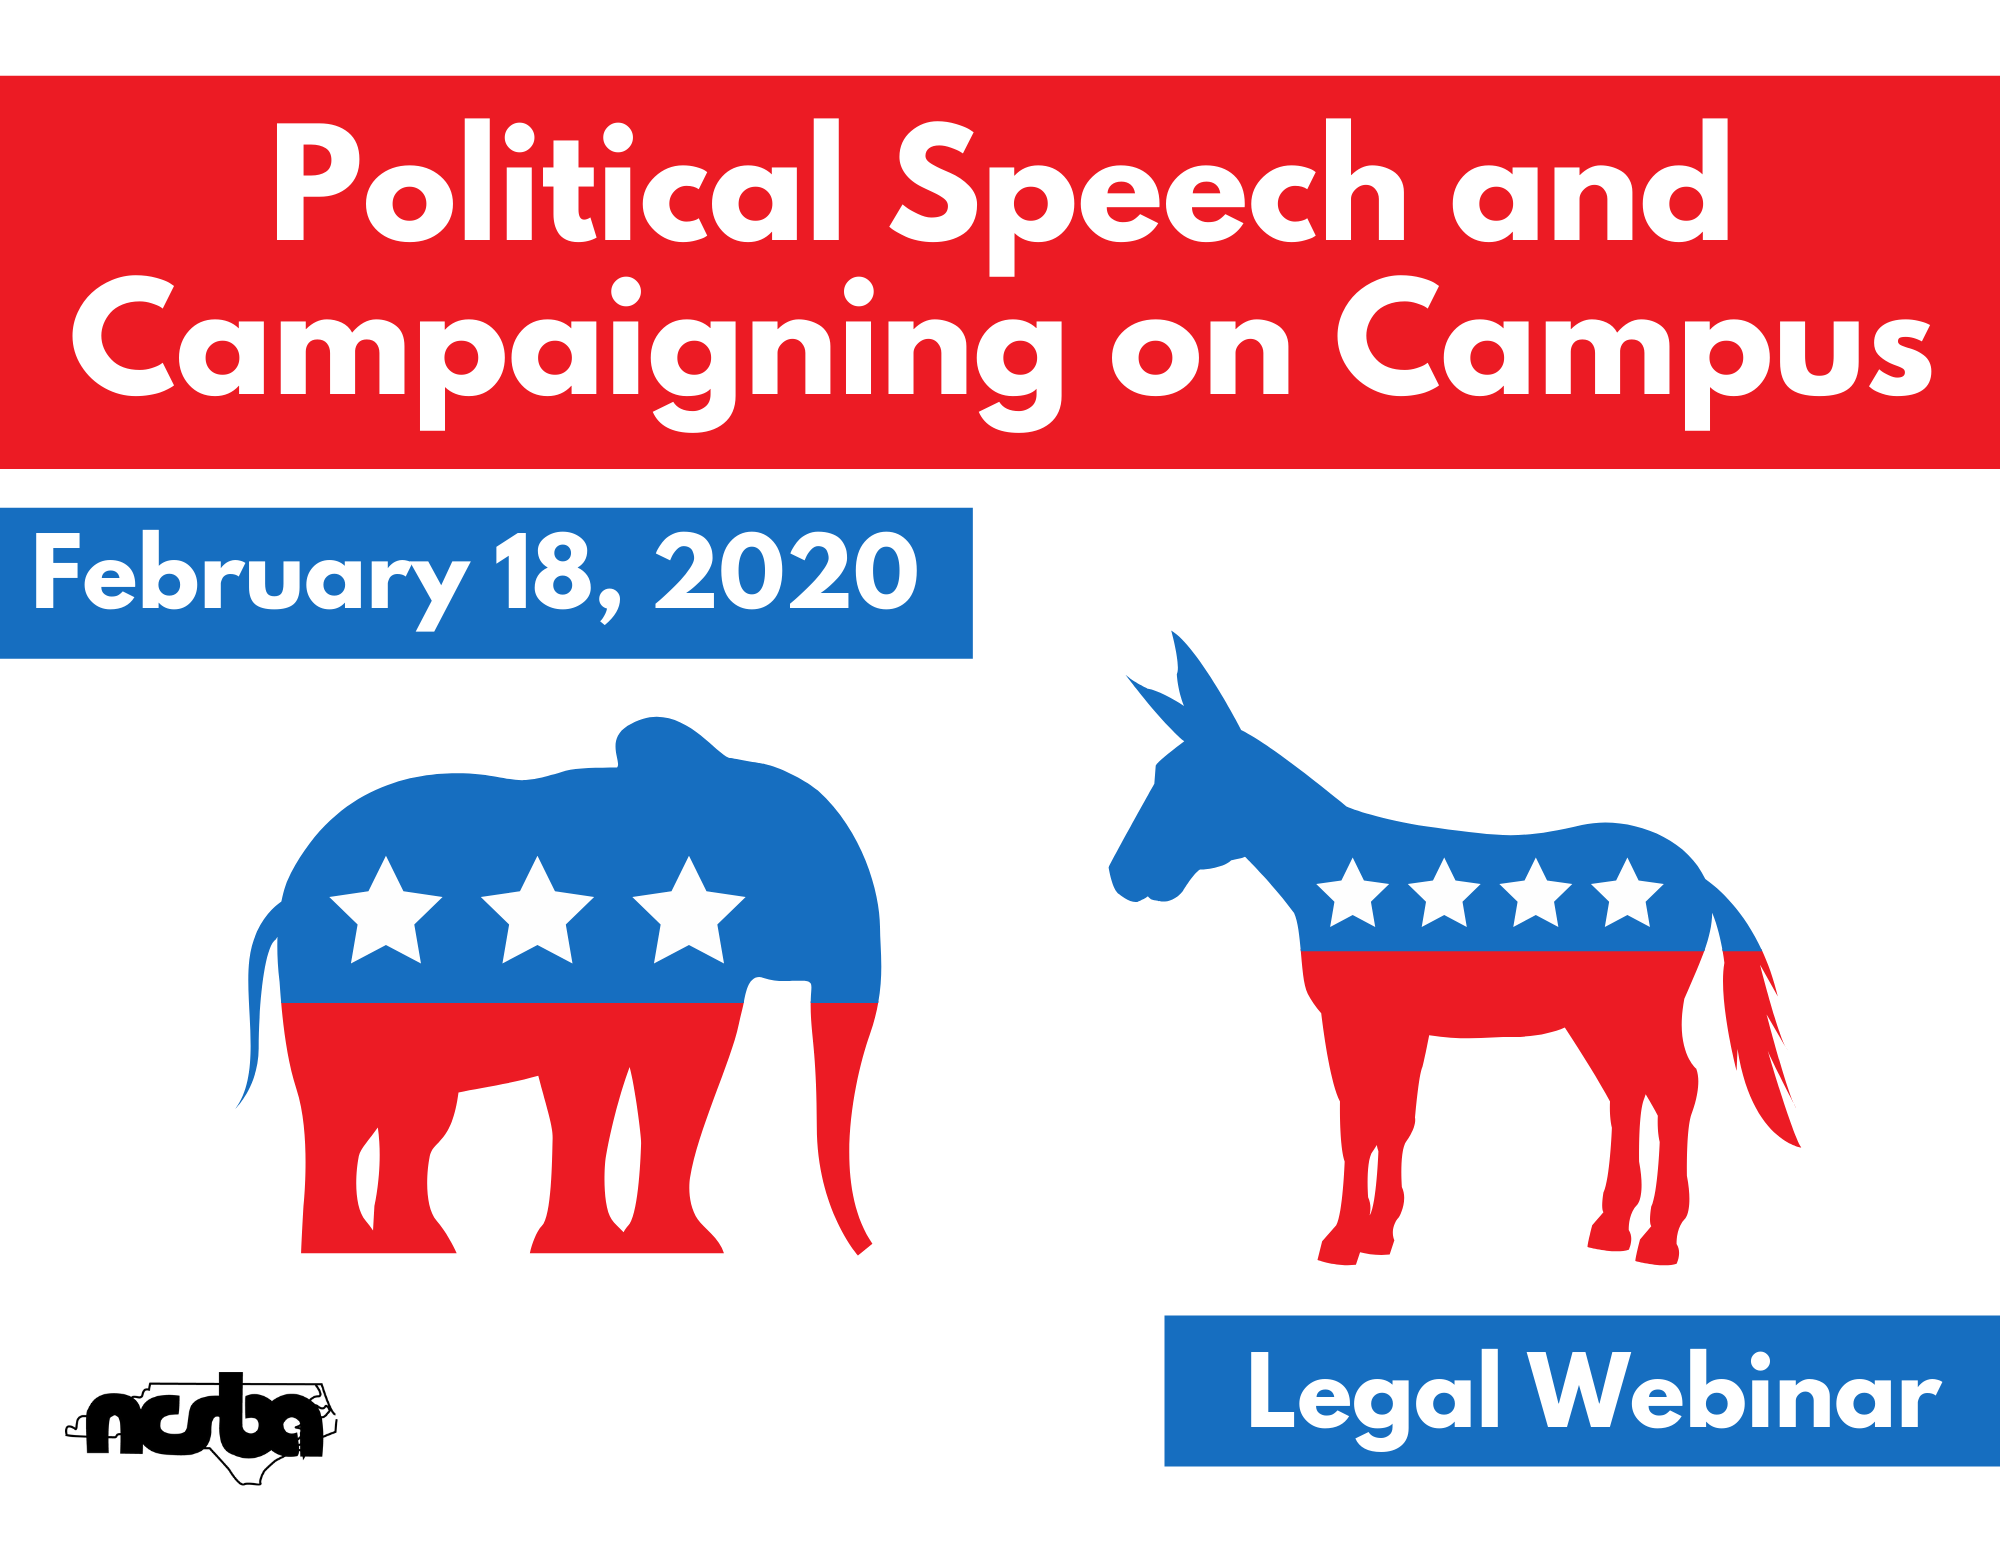 Political Speech and Campaigning on Campus (Webinar)